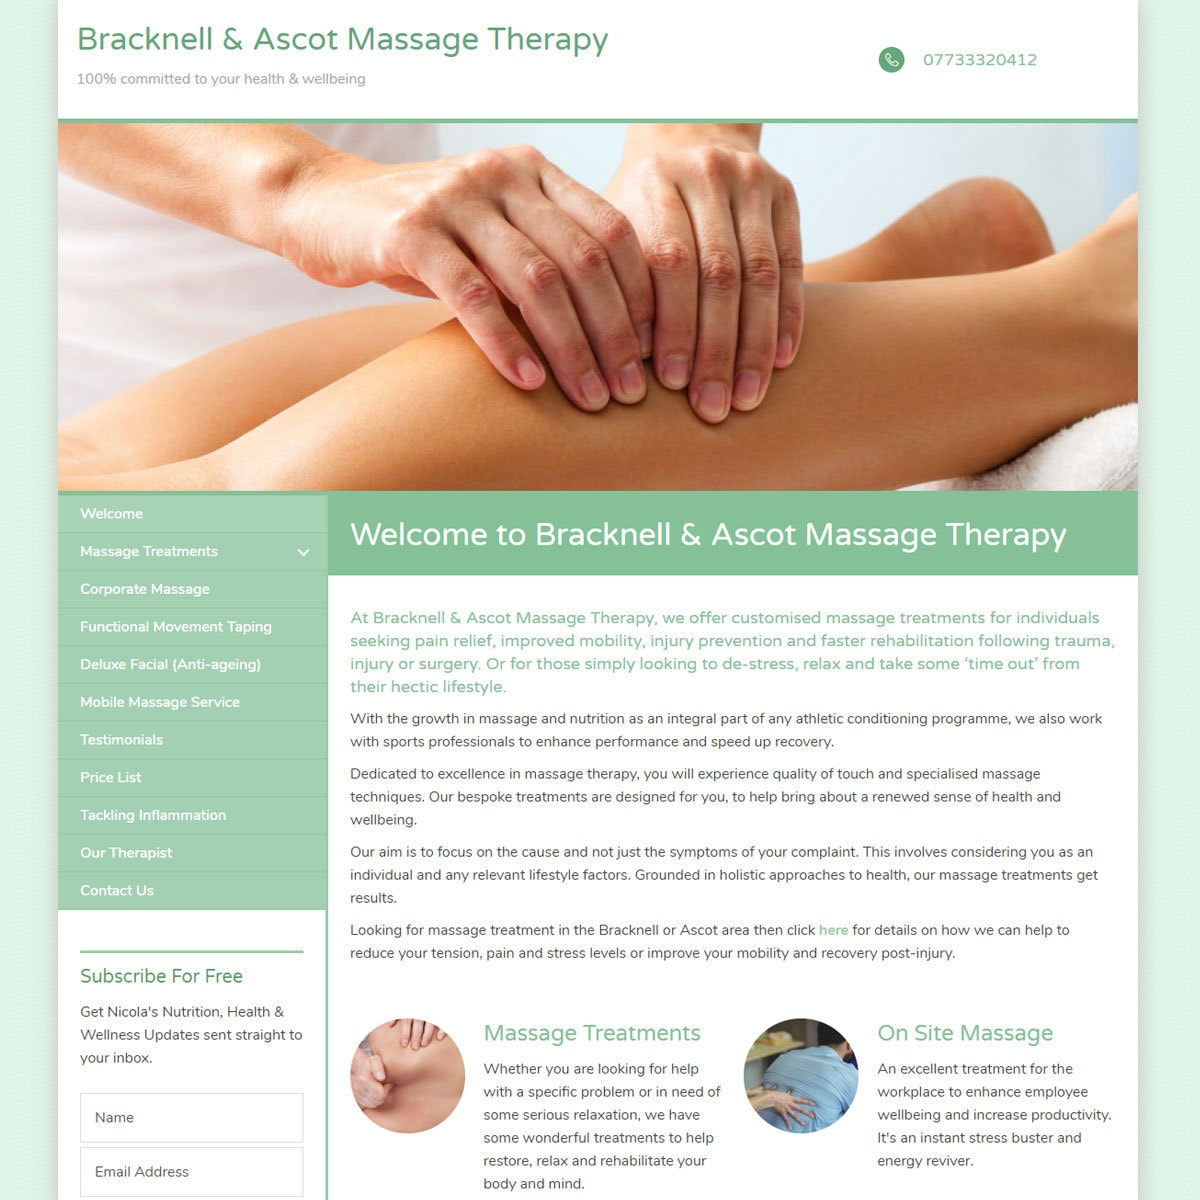 bracknellandascotmassagetherapy